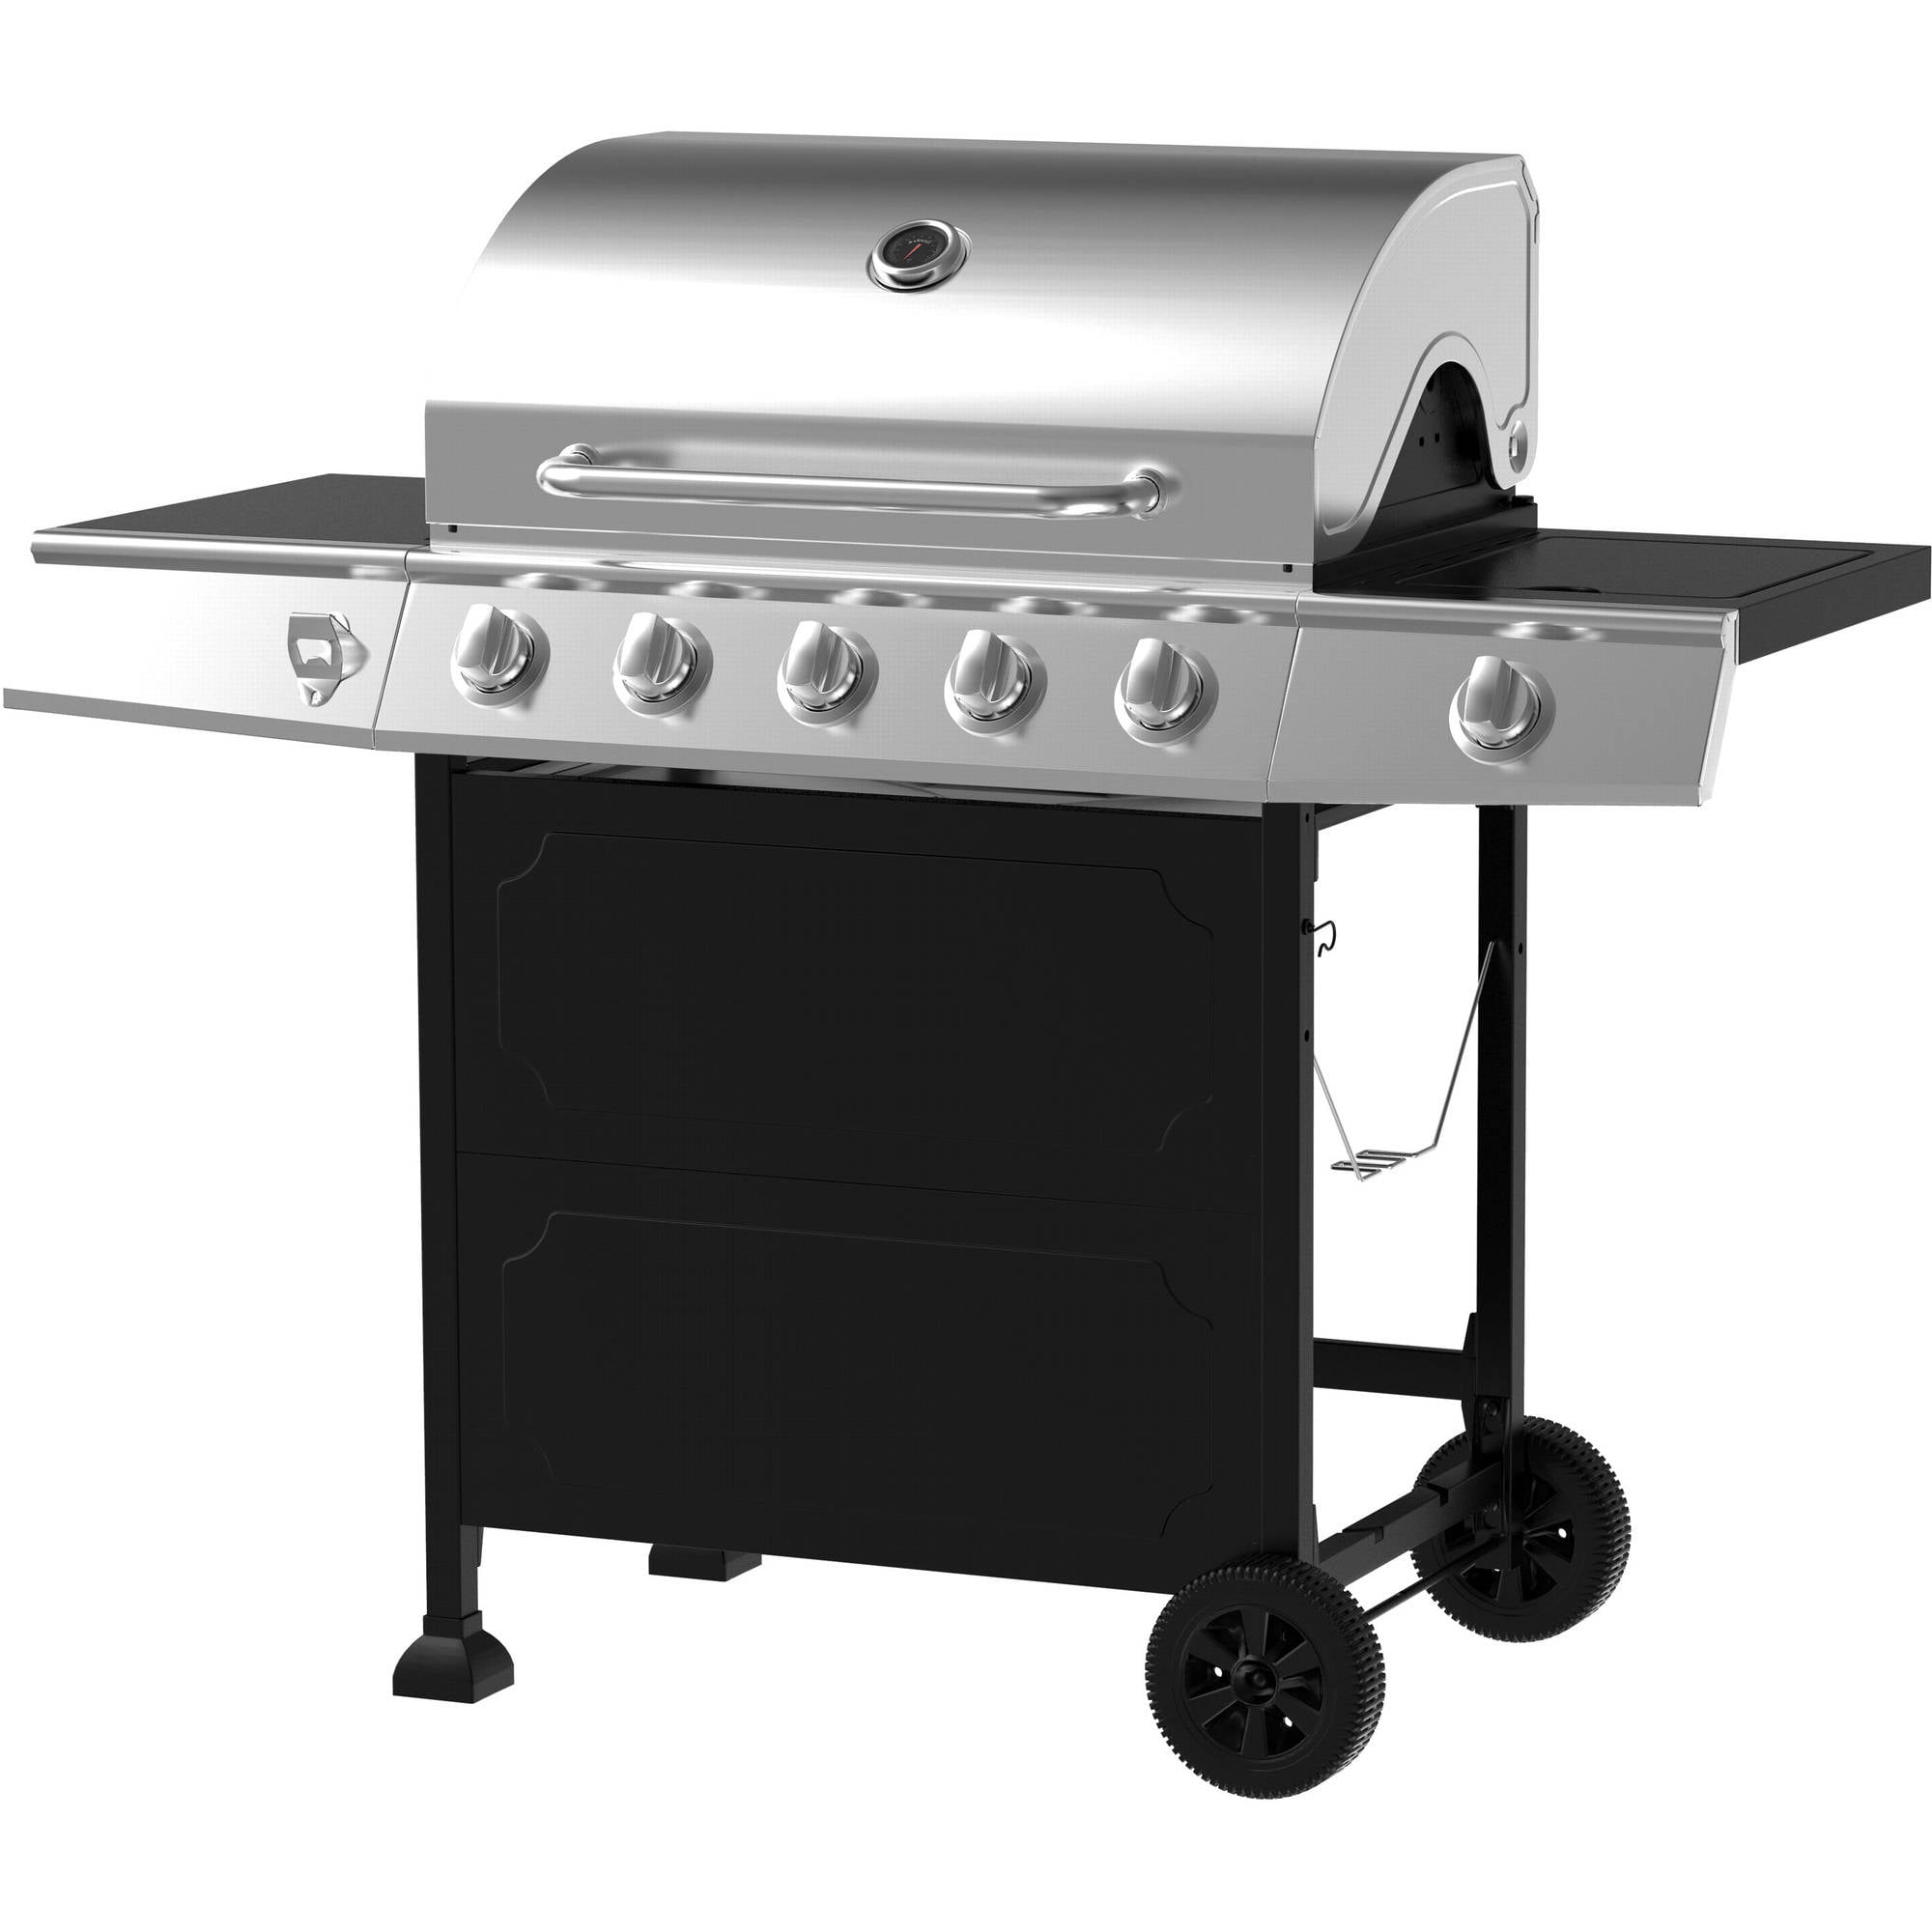 5-Burner Gas Grill, Stainless Steel Black by